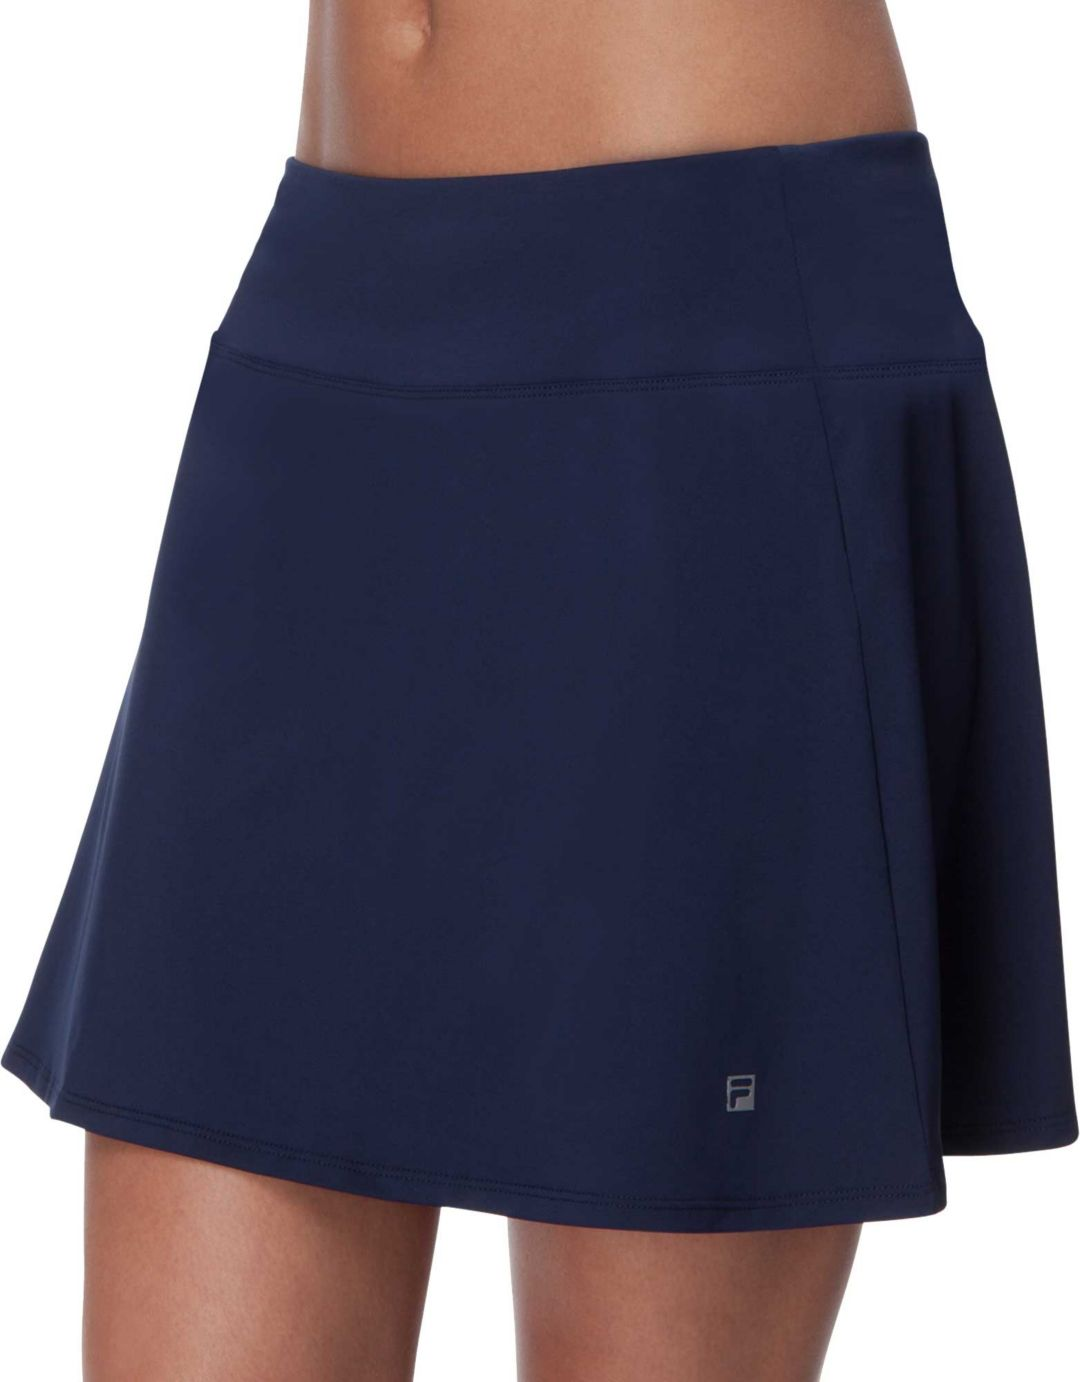 232937c079b44 Fila Women's Long Flirty Tennis Skort | DICK'S Sporting Goods